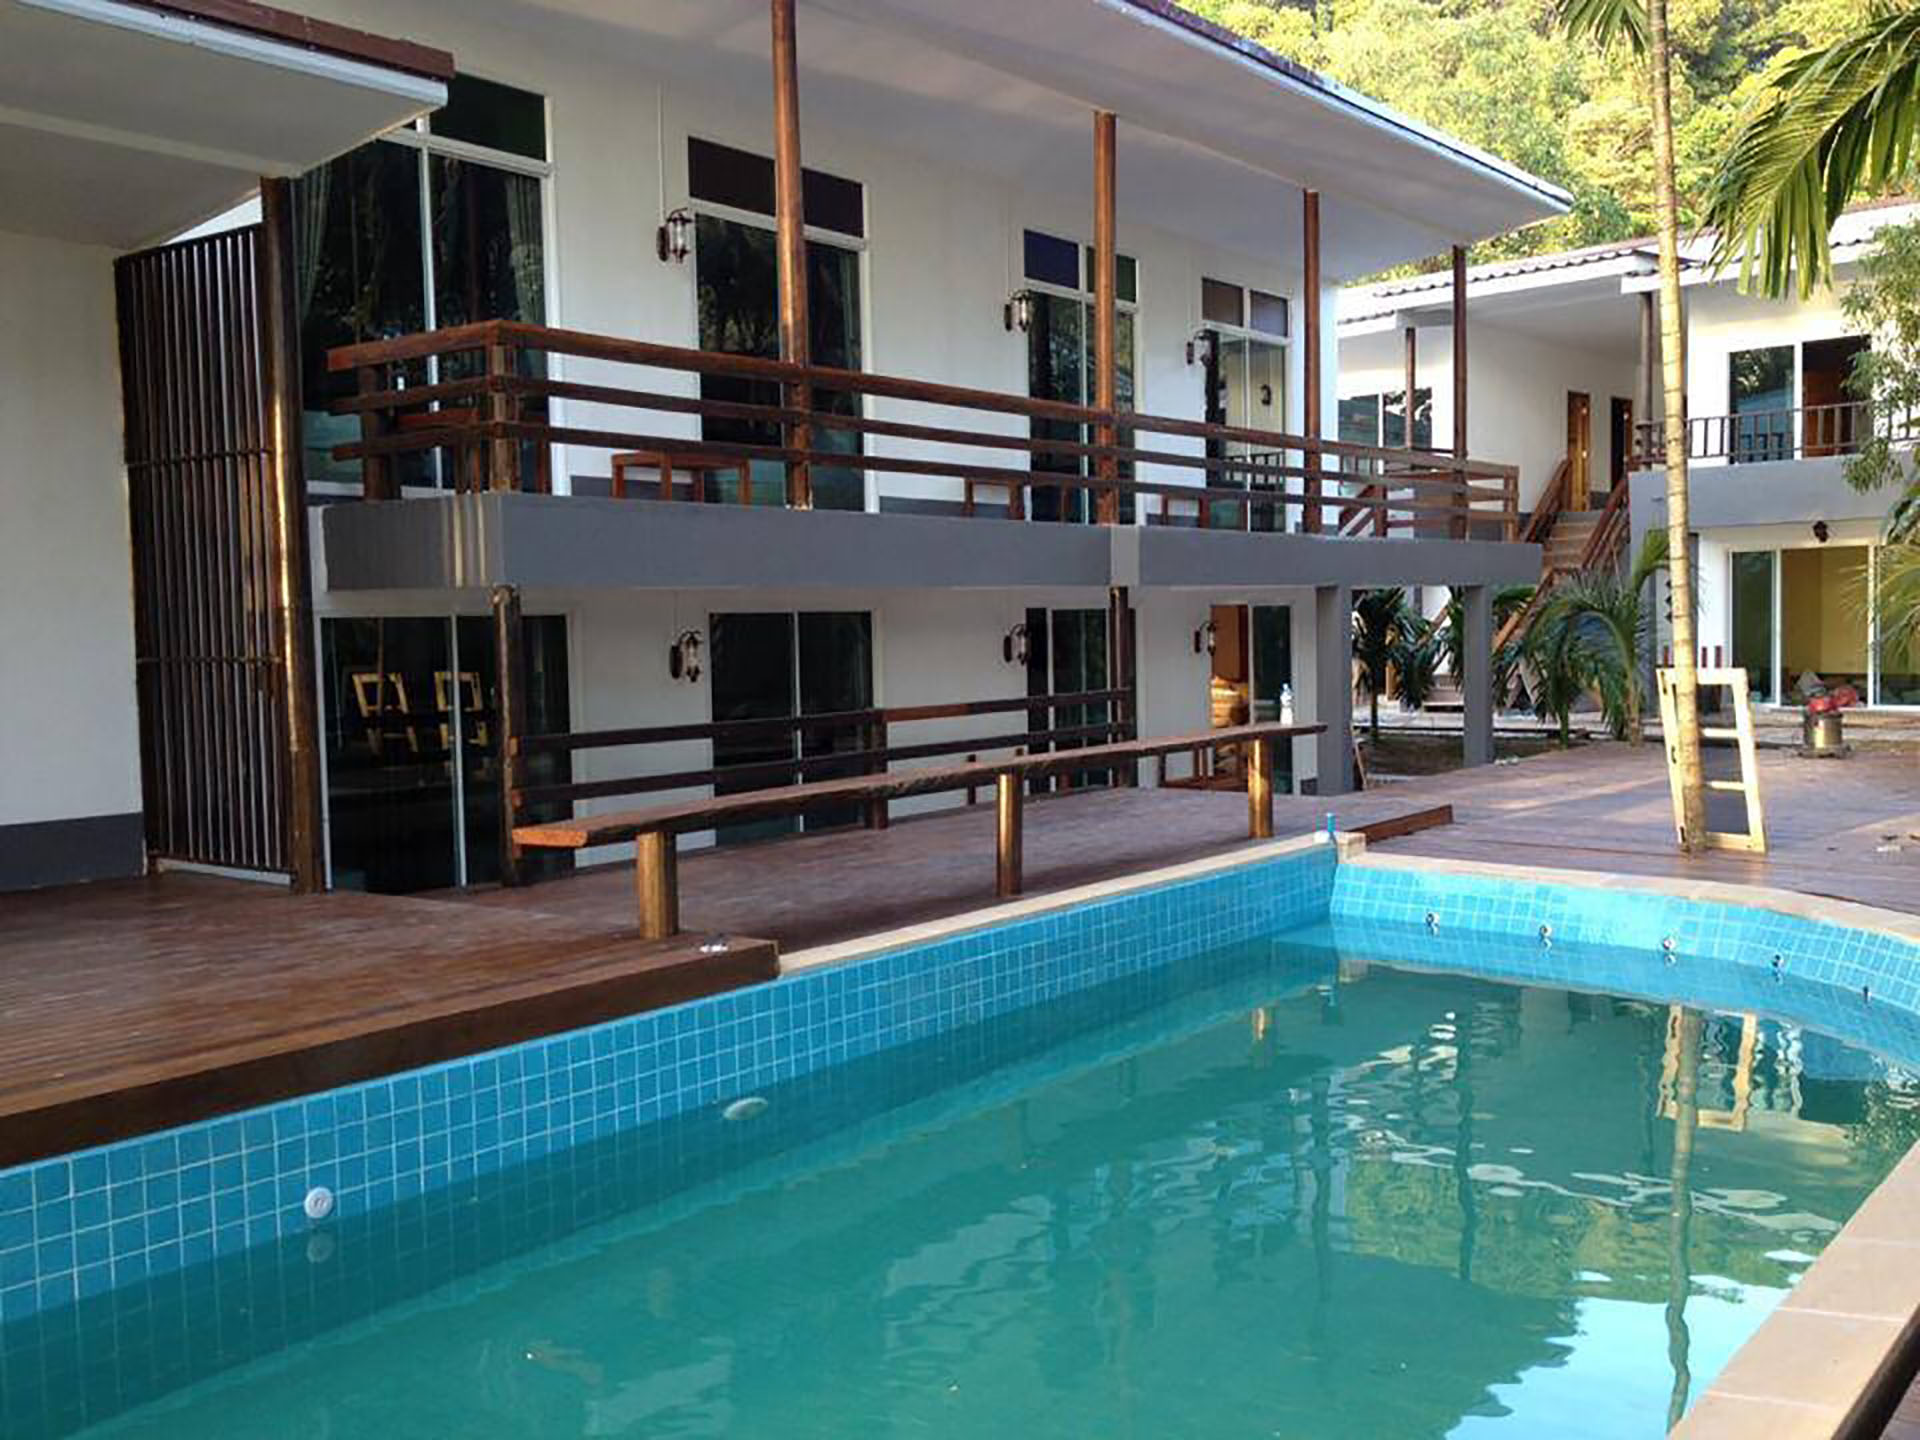 Hôtel gay à Koh Chang